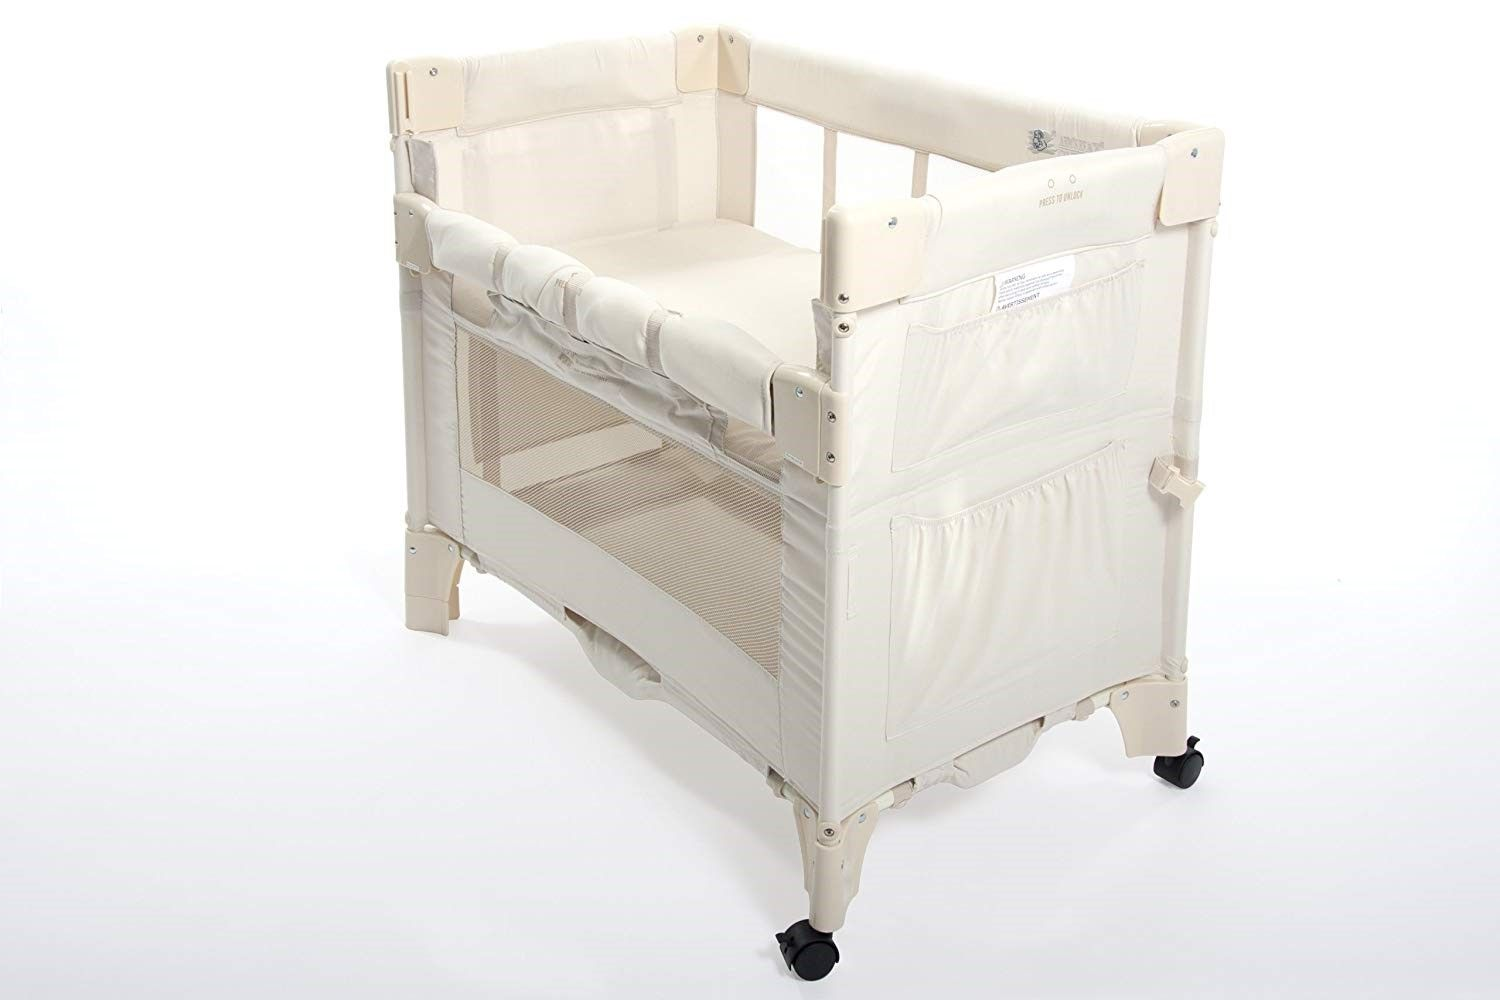 Lotus Bassinet Kit Crib Bundle Reviews Lotus Bassinet Kit